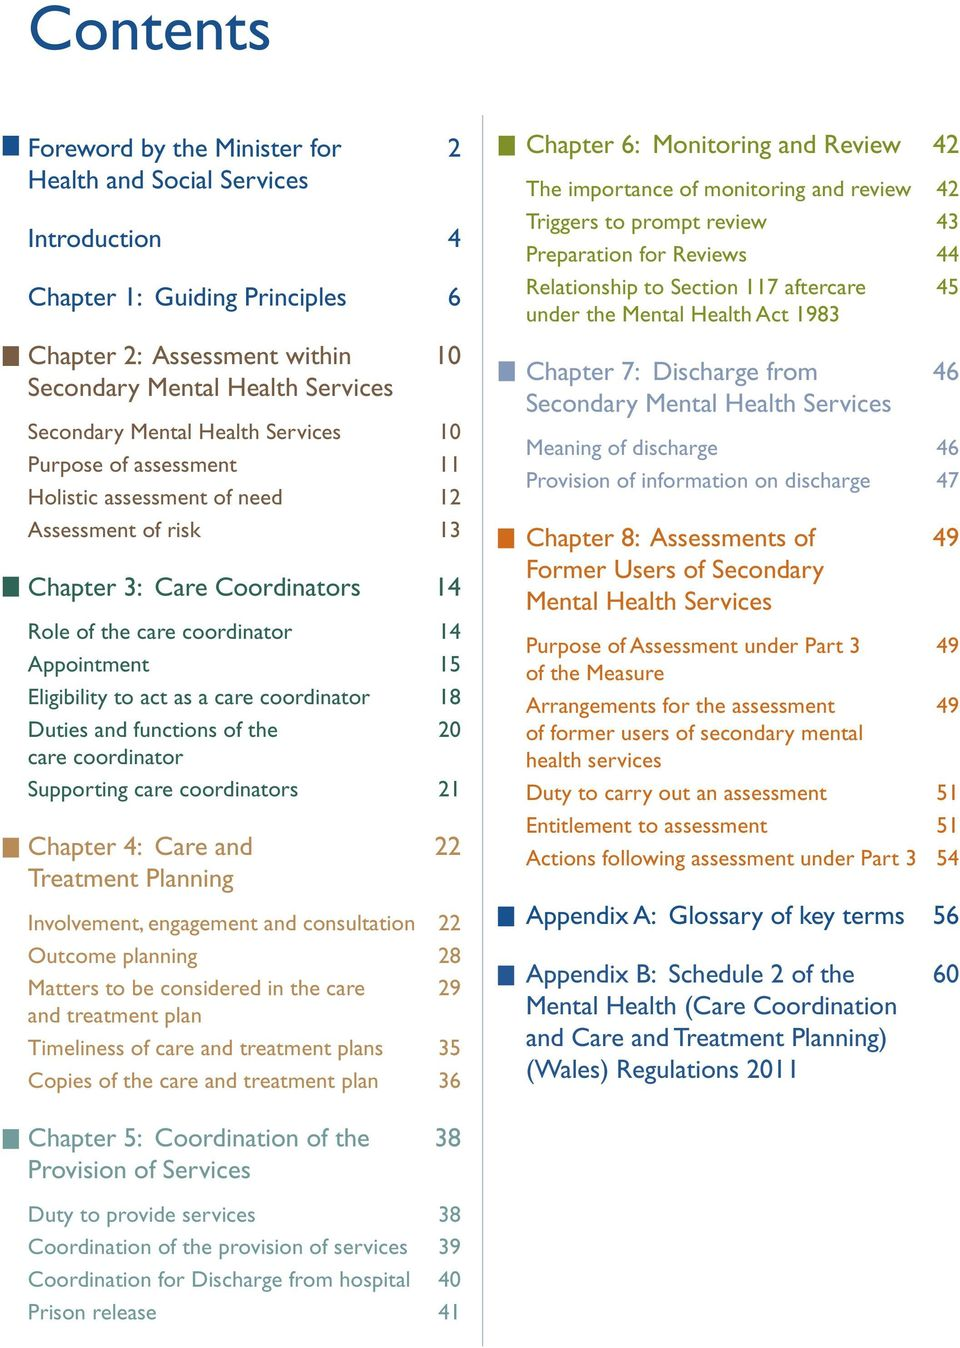 care coordinator 18 Duties and functions of the 20 care coordinator Supporting care coordinators 21 Chapter 4: Care and 22 Treatment Planning Involvement, engagement and consultation 22 Outcome